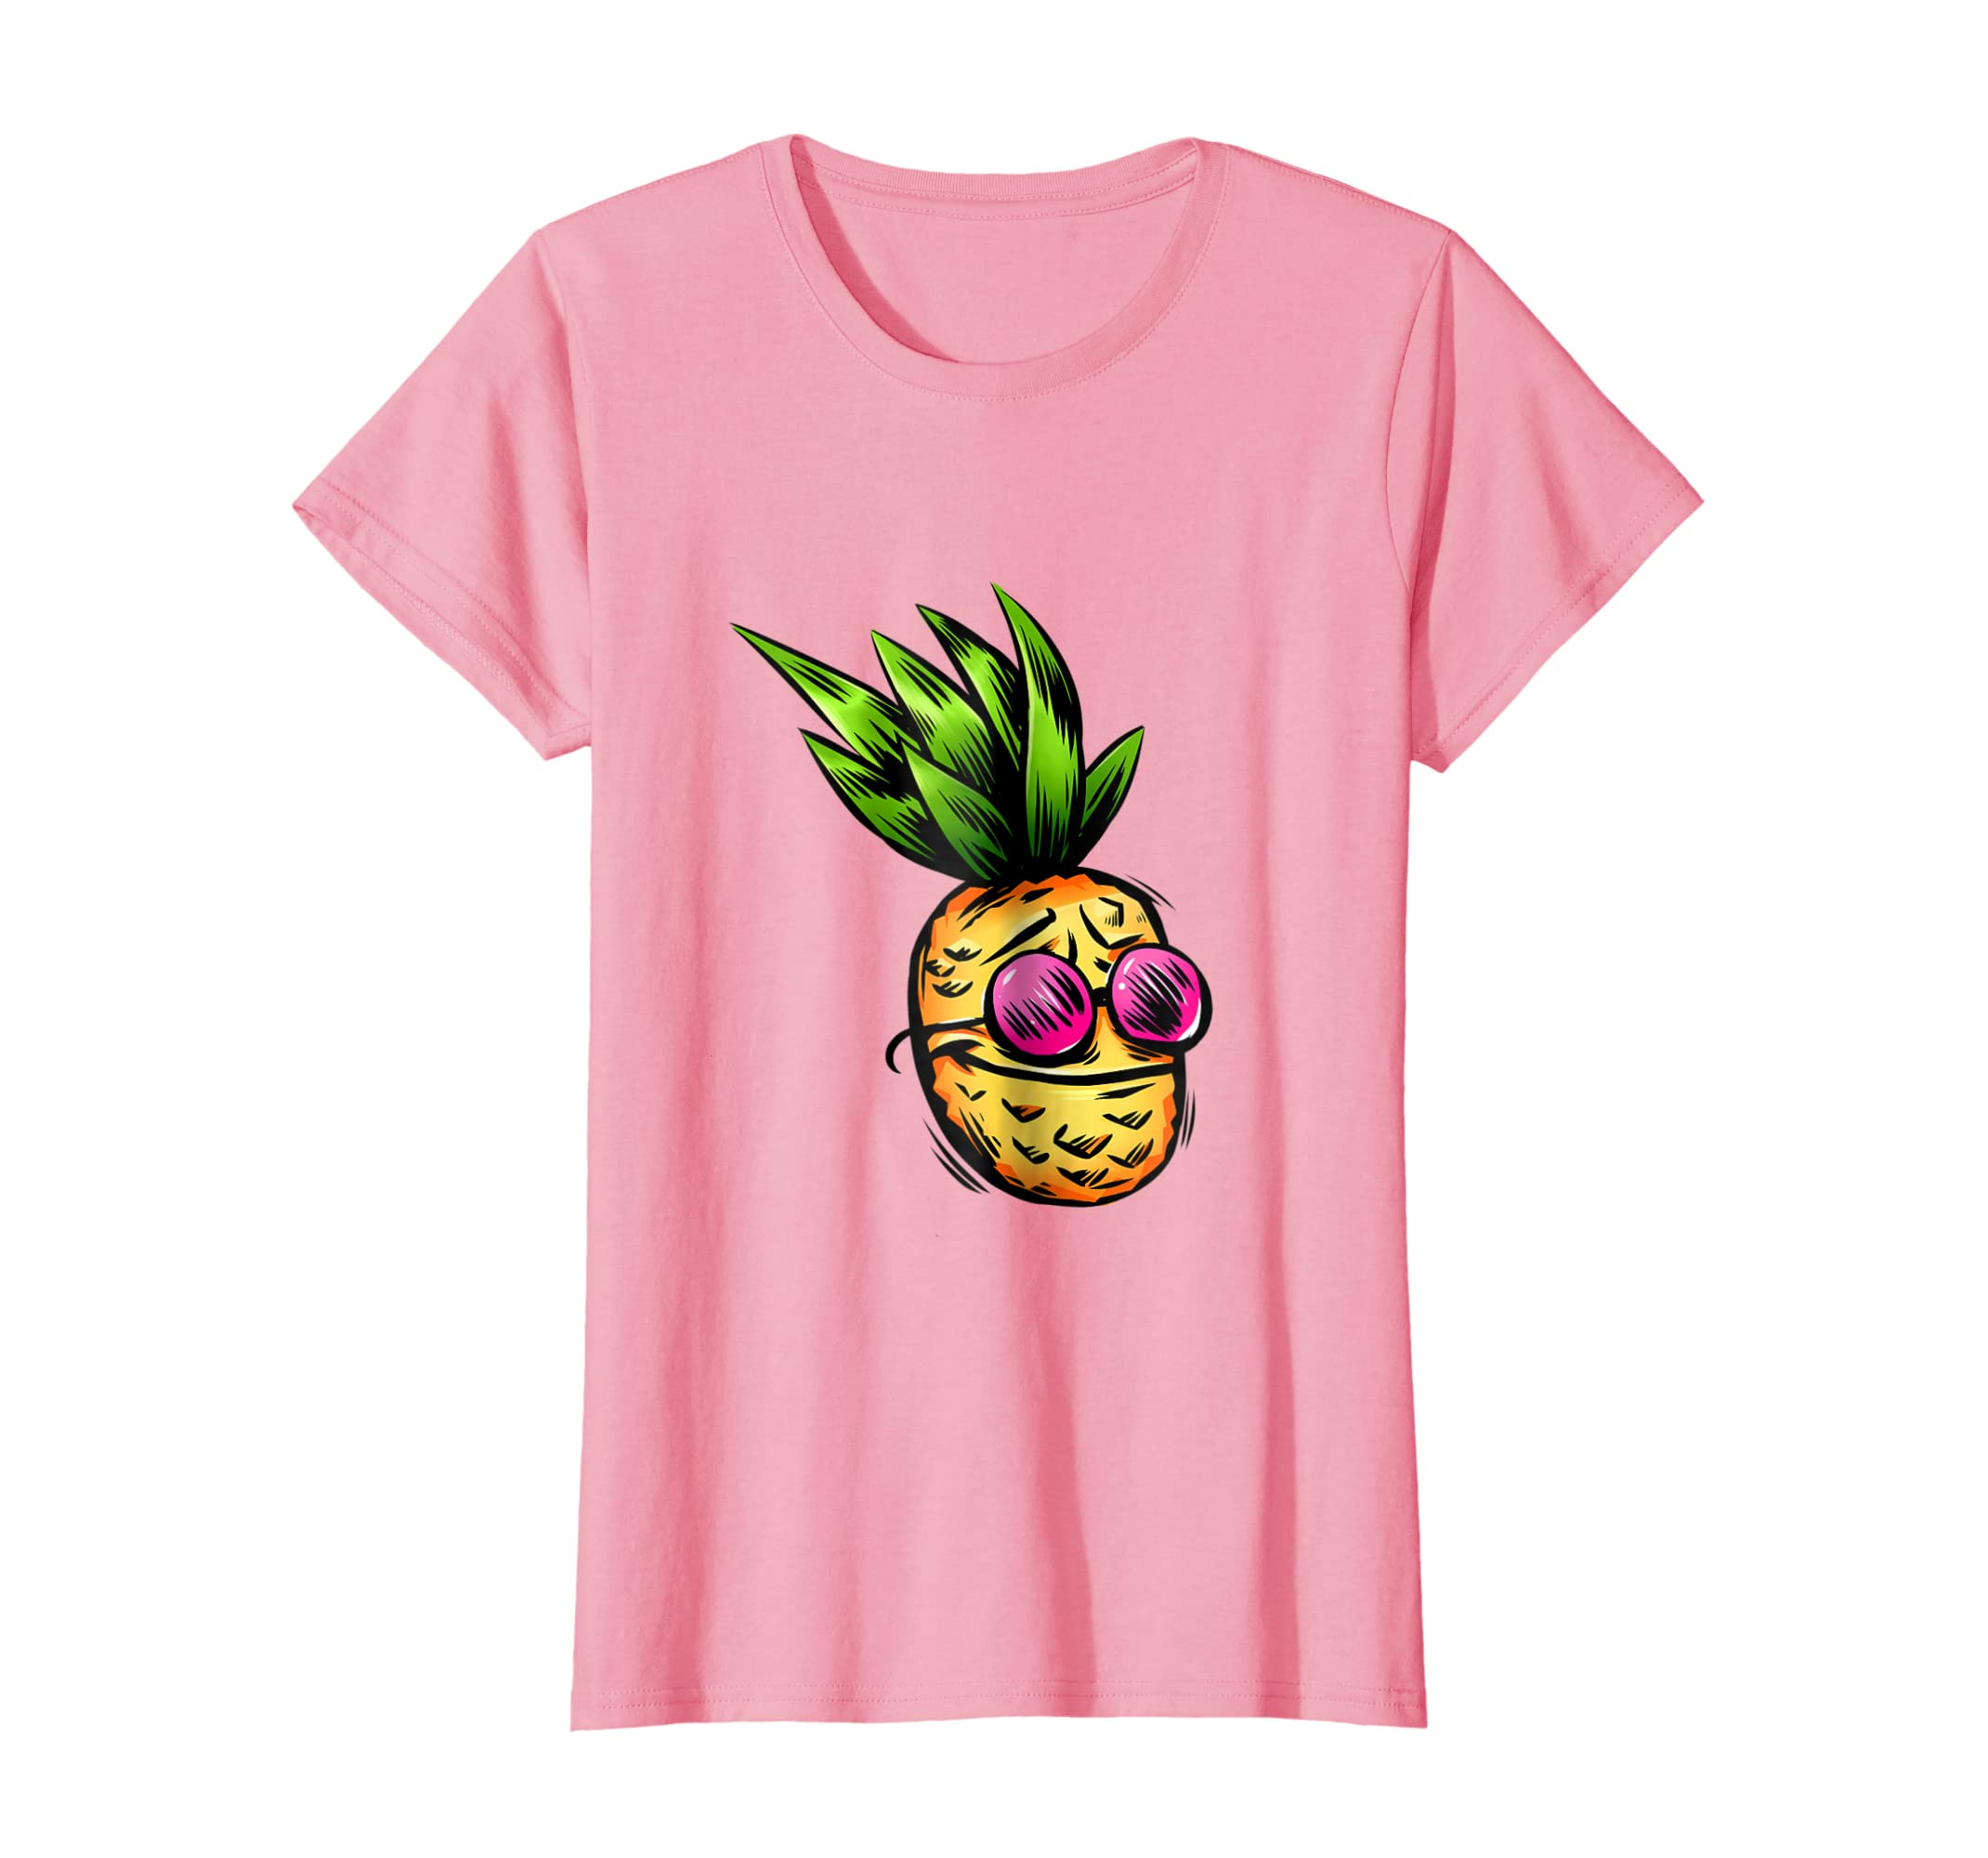 55f2e0e00 Amazon.com: Party Pineapple Hawaiian T-Shirt Men Women Boys Girls: Clothing